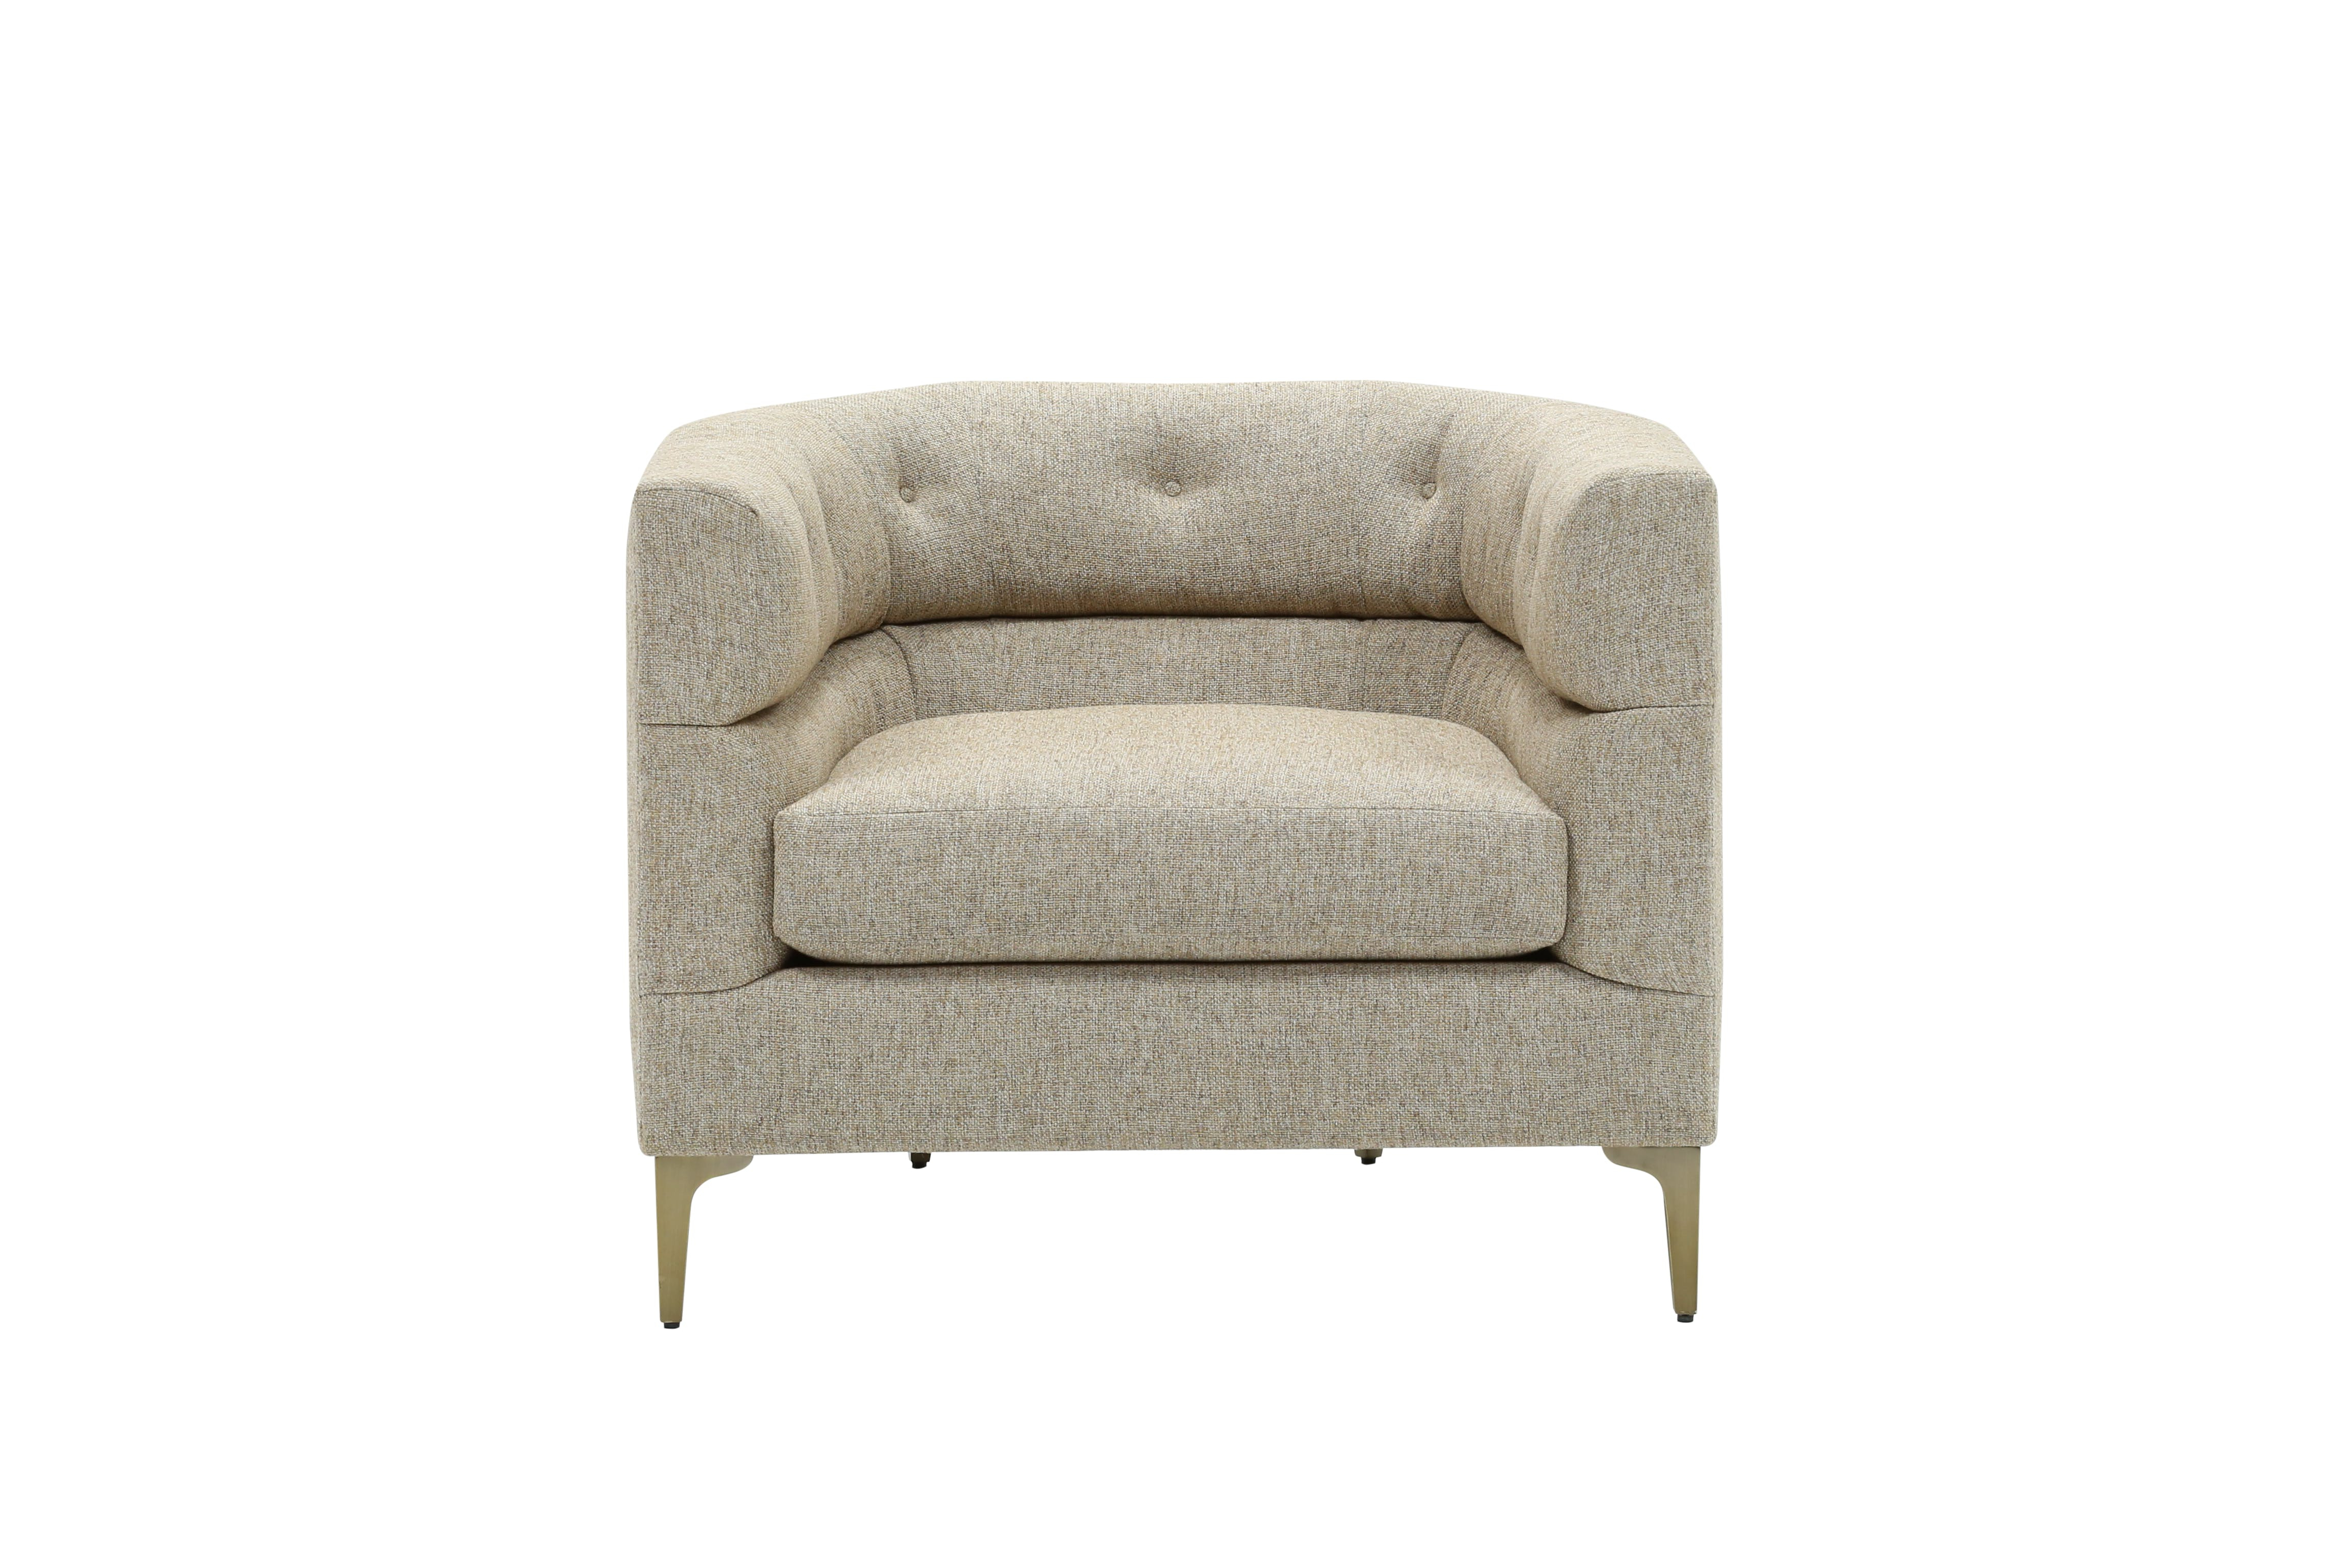 Matteo Arm Sofa Chairs By Nate Berkus And Jeremiah Brent Within Favorite Nate Berkus Just Launched A Home Collection With Hubby Jeremiah (View 2 of 20)